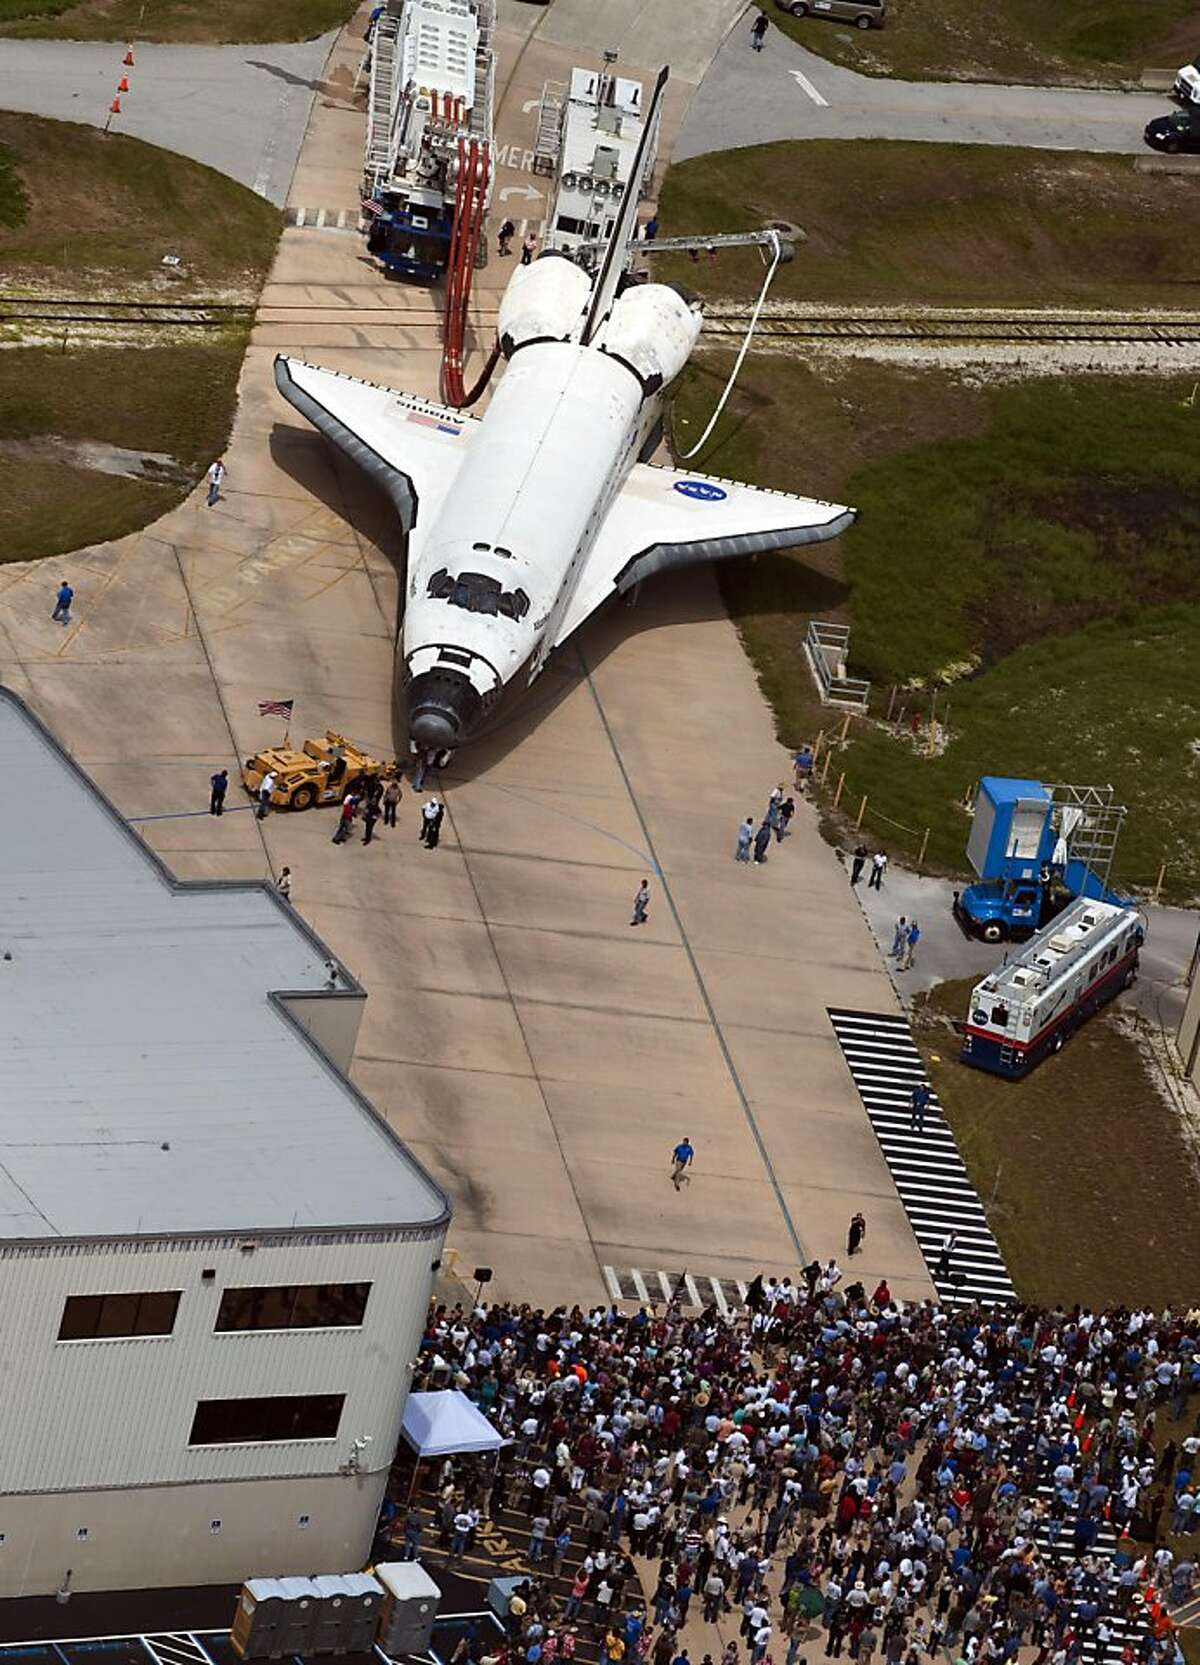 The space shuttle Atlantis is towed back to its hanger on July 21, 2011 at Kennedy Space Center in Florida, after its 13-day mission. Atlantis safely touched down bringing an end to the 30-year US shuttle program. TOPSHOTS/